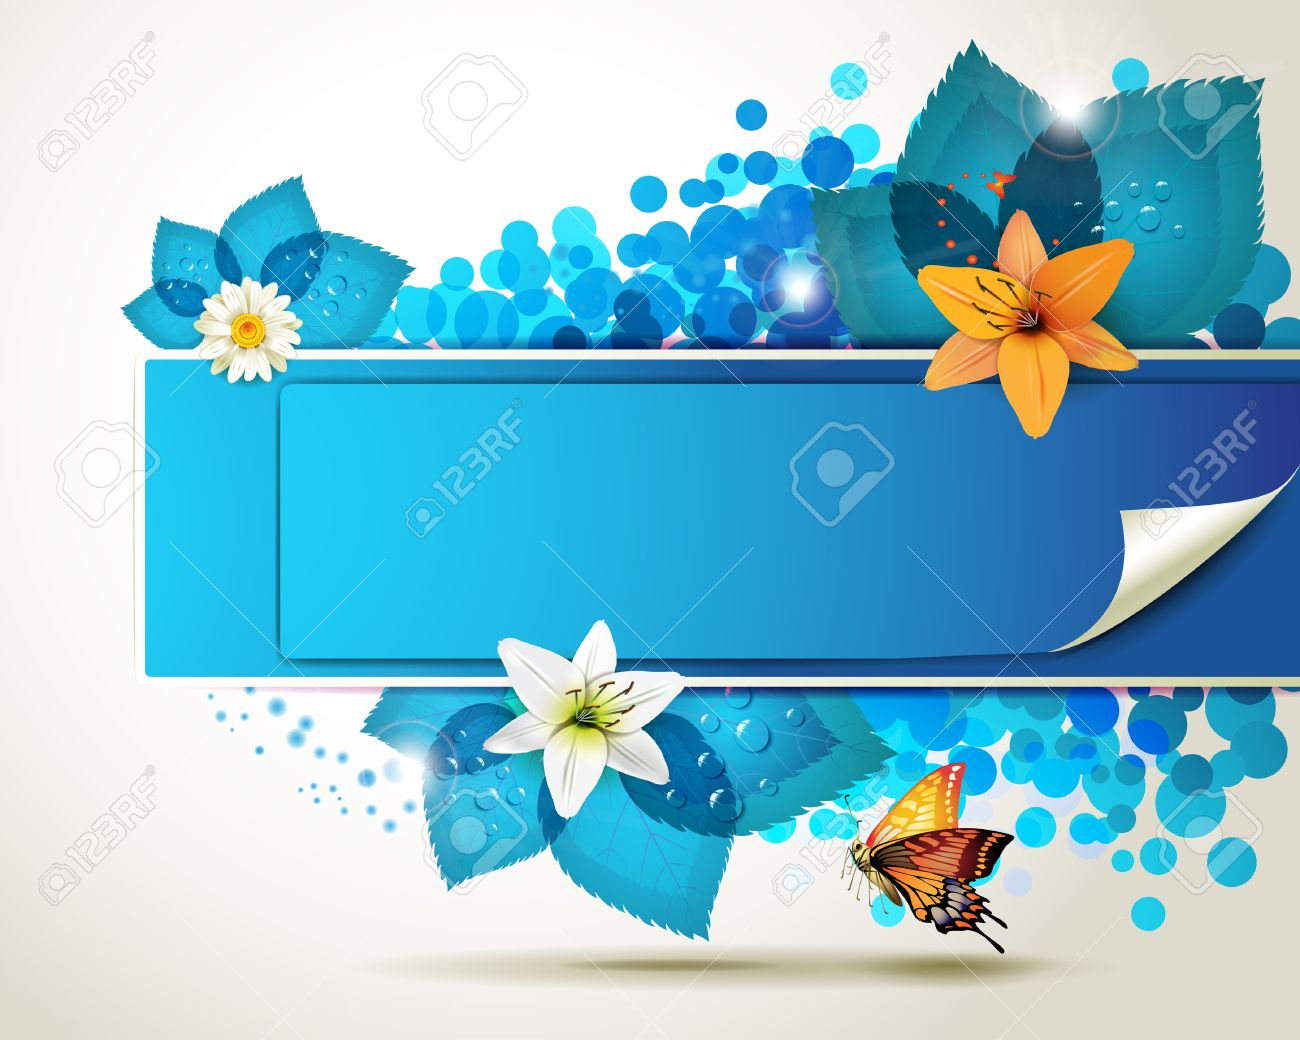 Simple Colorful Border Stock Photos & Pictures. Royalty Free ...